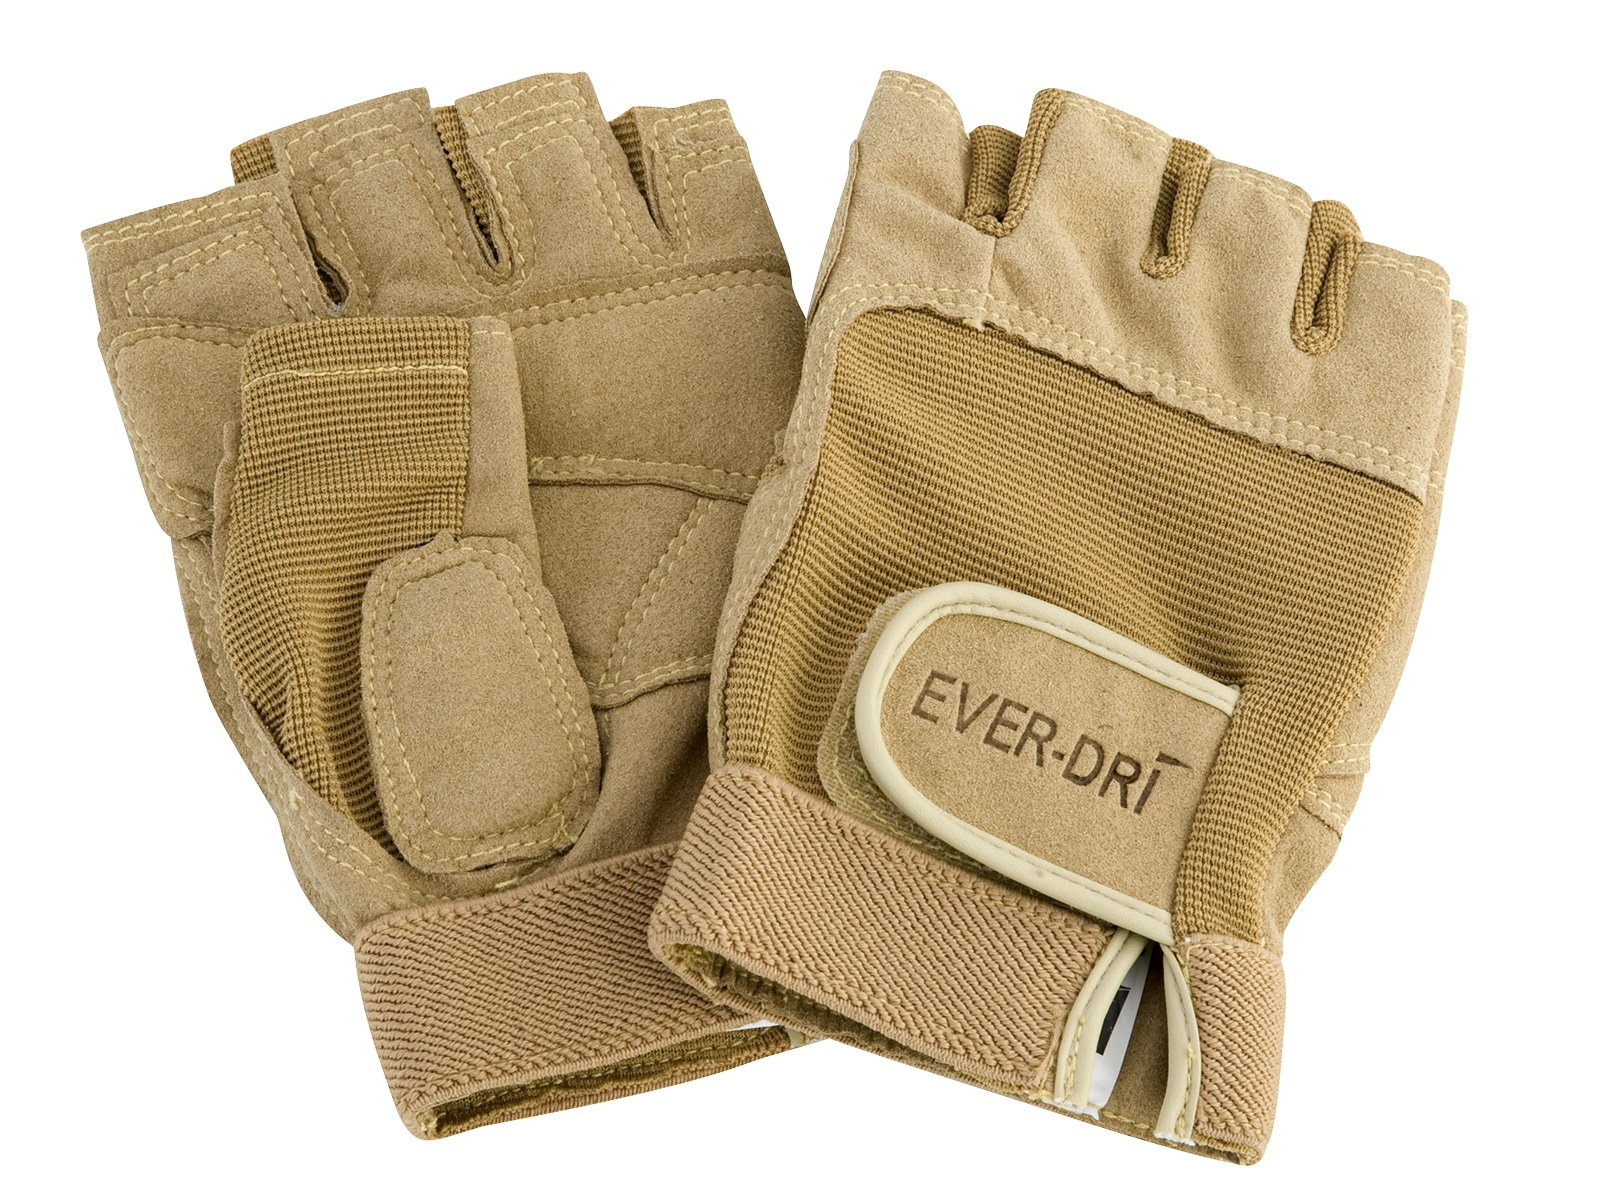 Director's Showcase EVER-DRI Color Guard Gloves (Tan, Large)